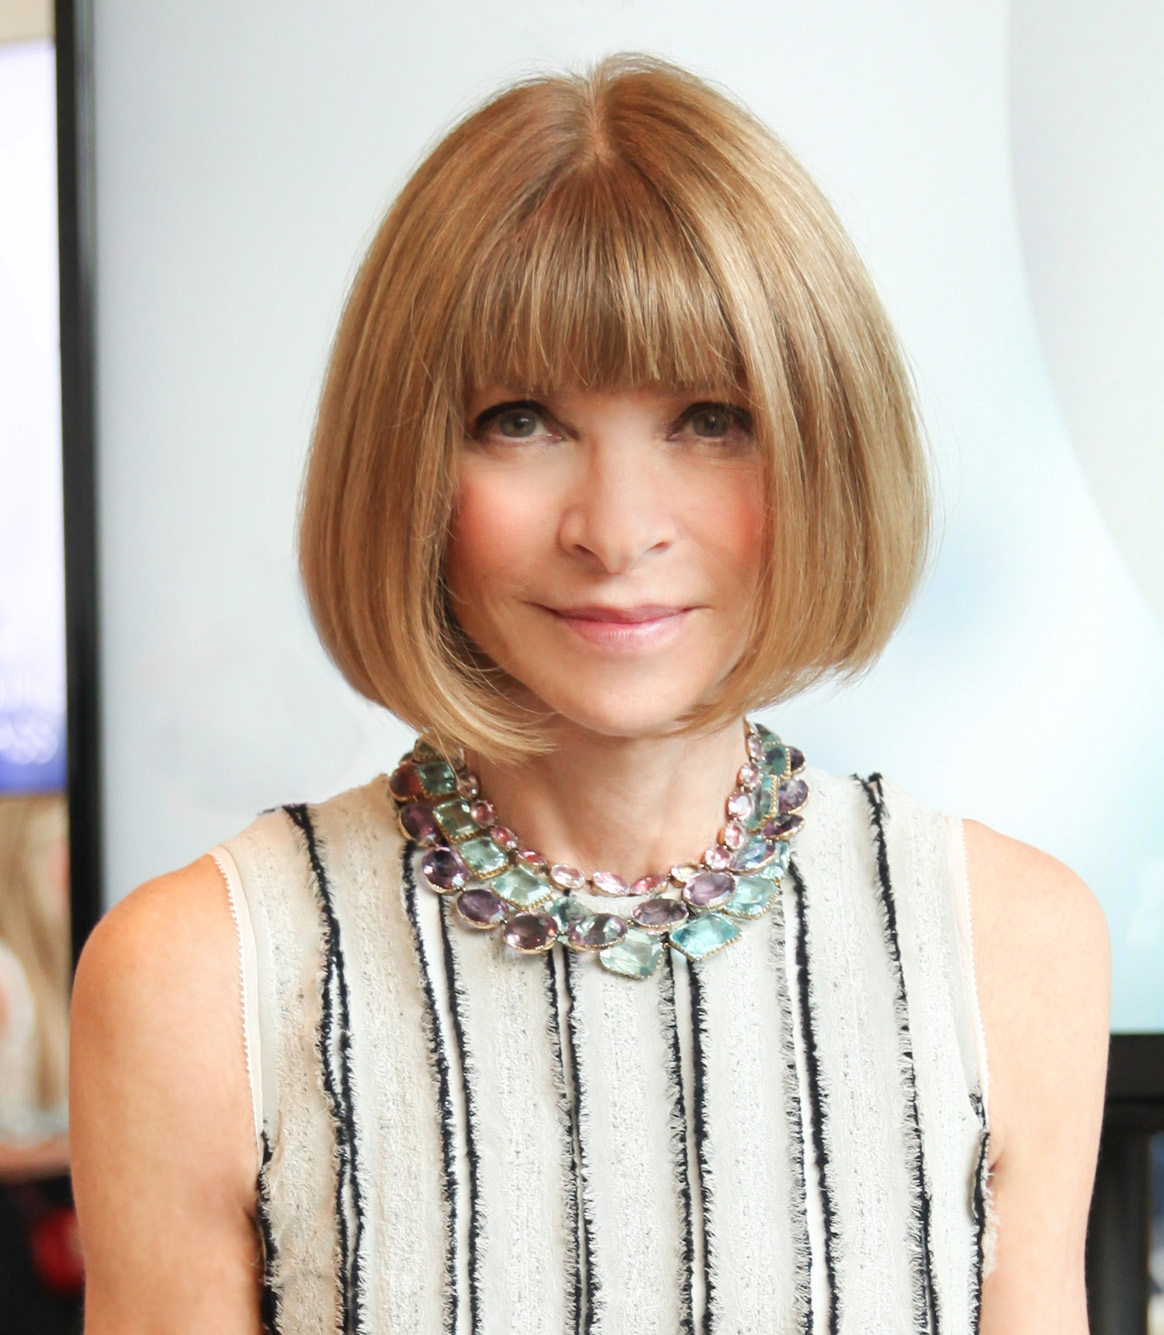 Anna Wintour, Editor-In-Chief, Vogue & Artistic Director, Conde Nast